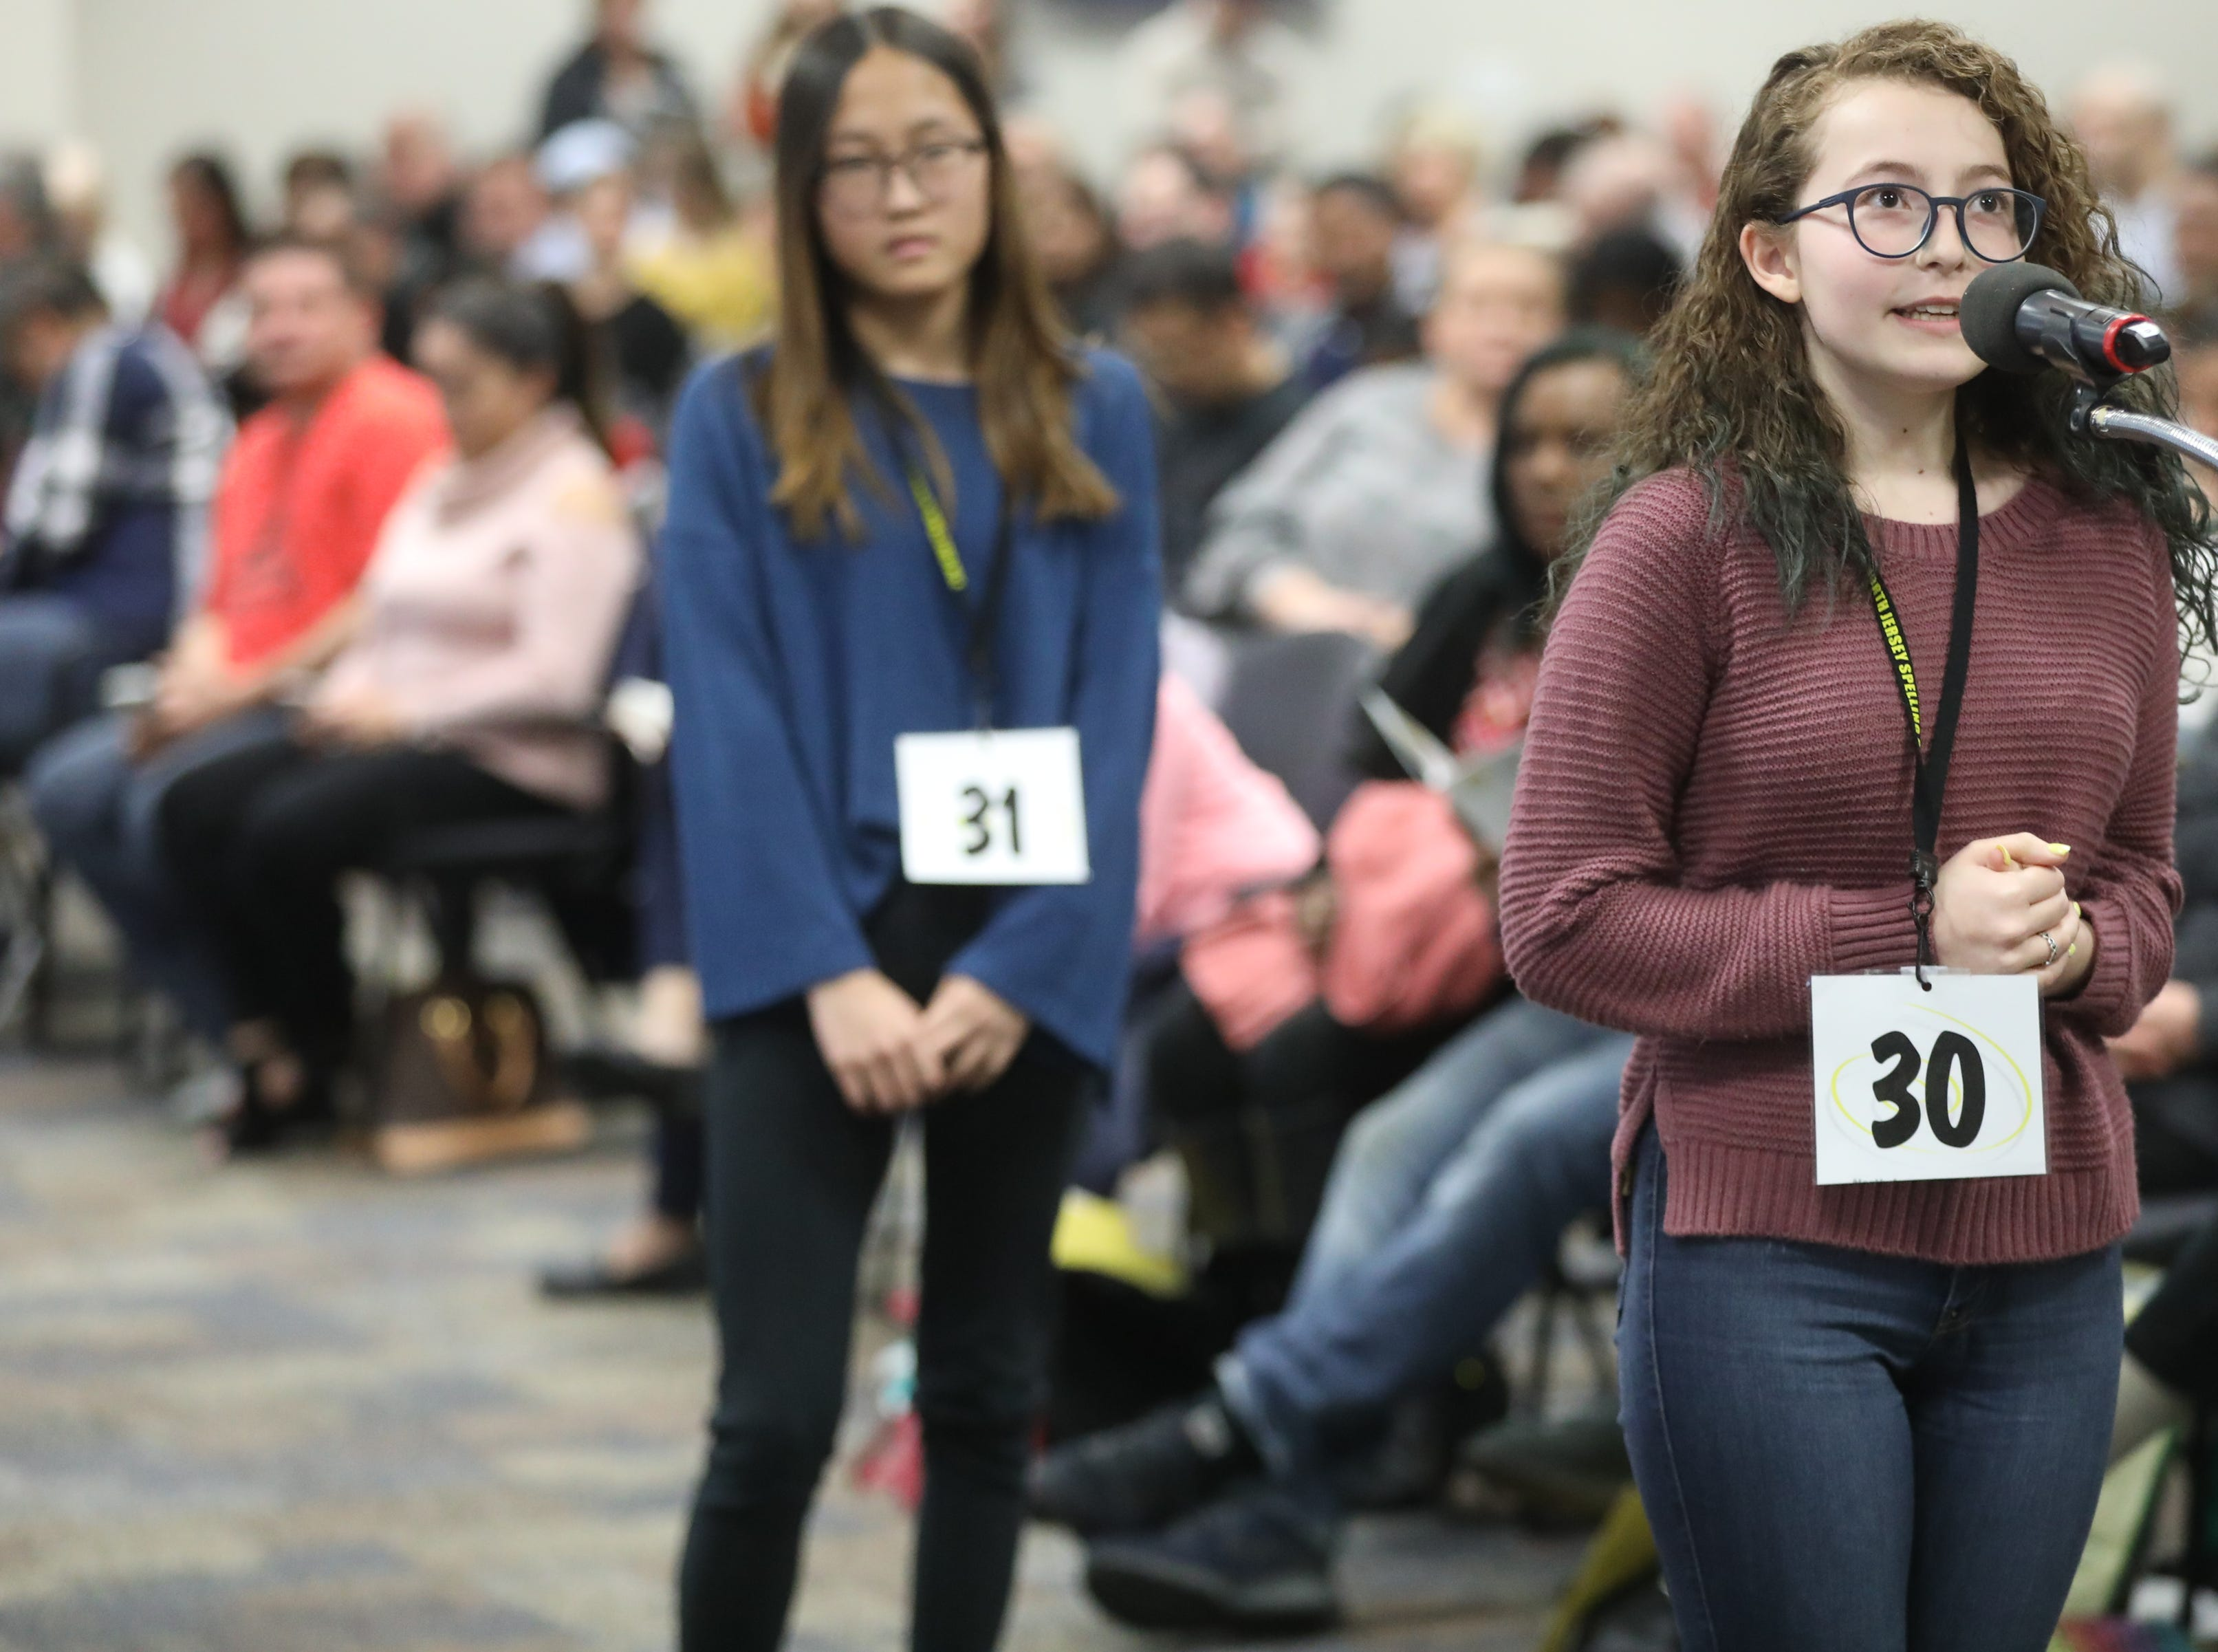 Mila Kush, of Haledon, competes in the first round of the 2019 North Jersey Spelling Bee, in Paramus. Thursday, March 14, 2019